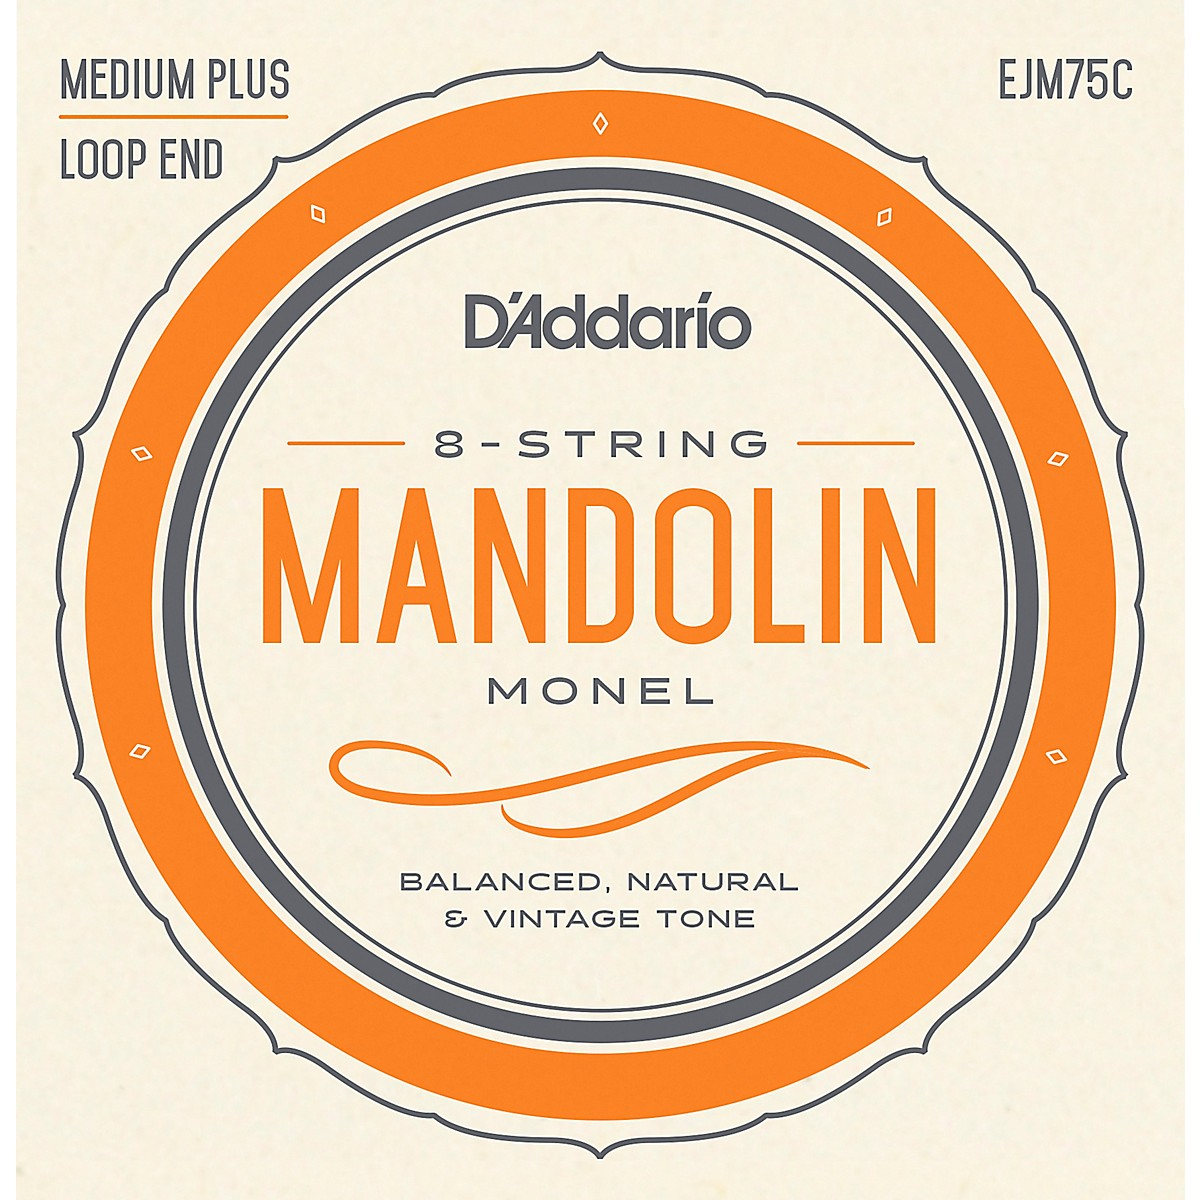 D'Addario Monel Mandolin Strings Medium Plus